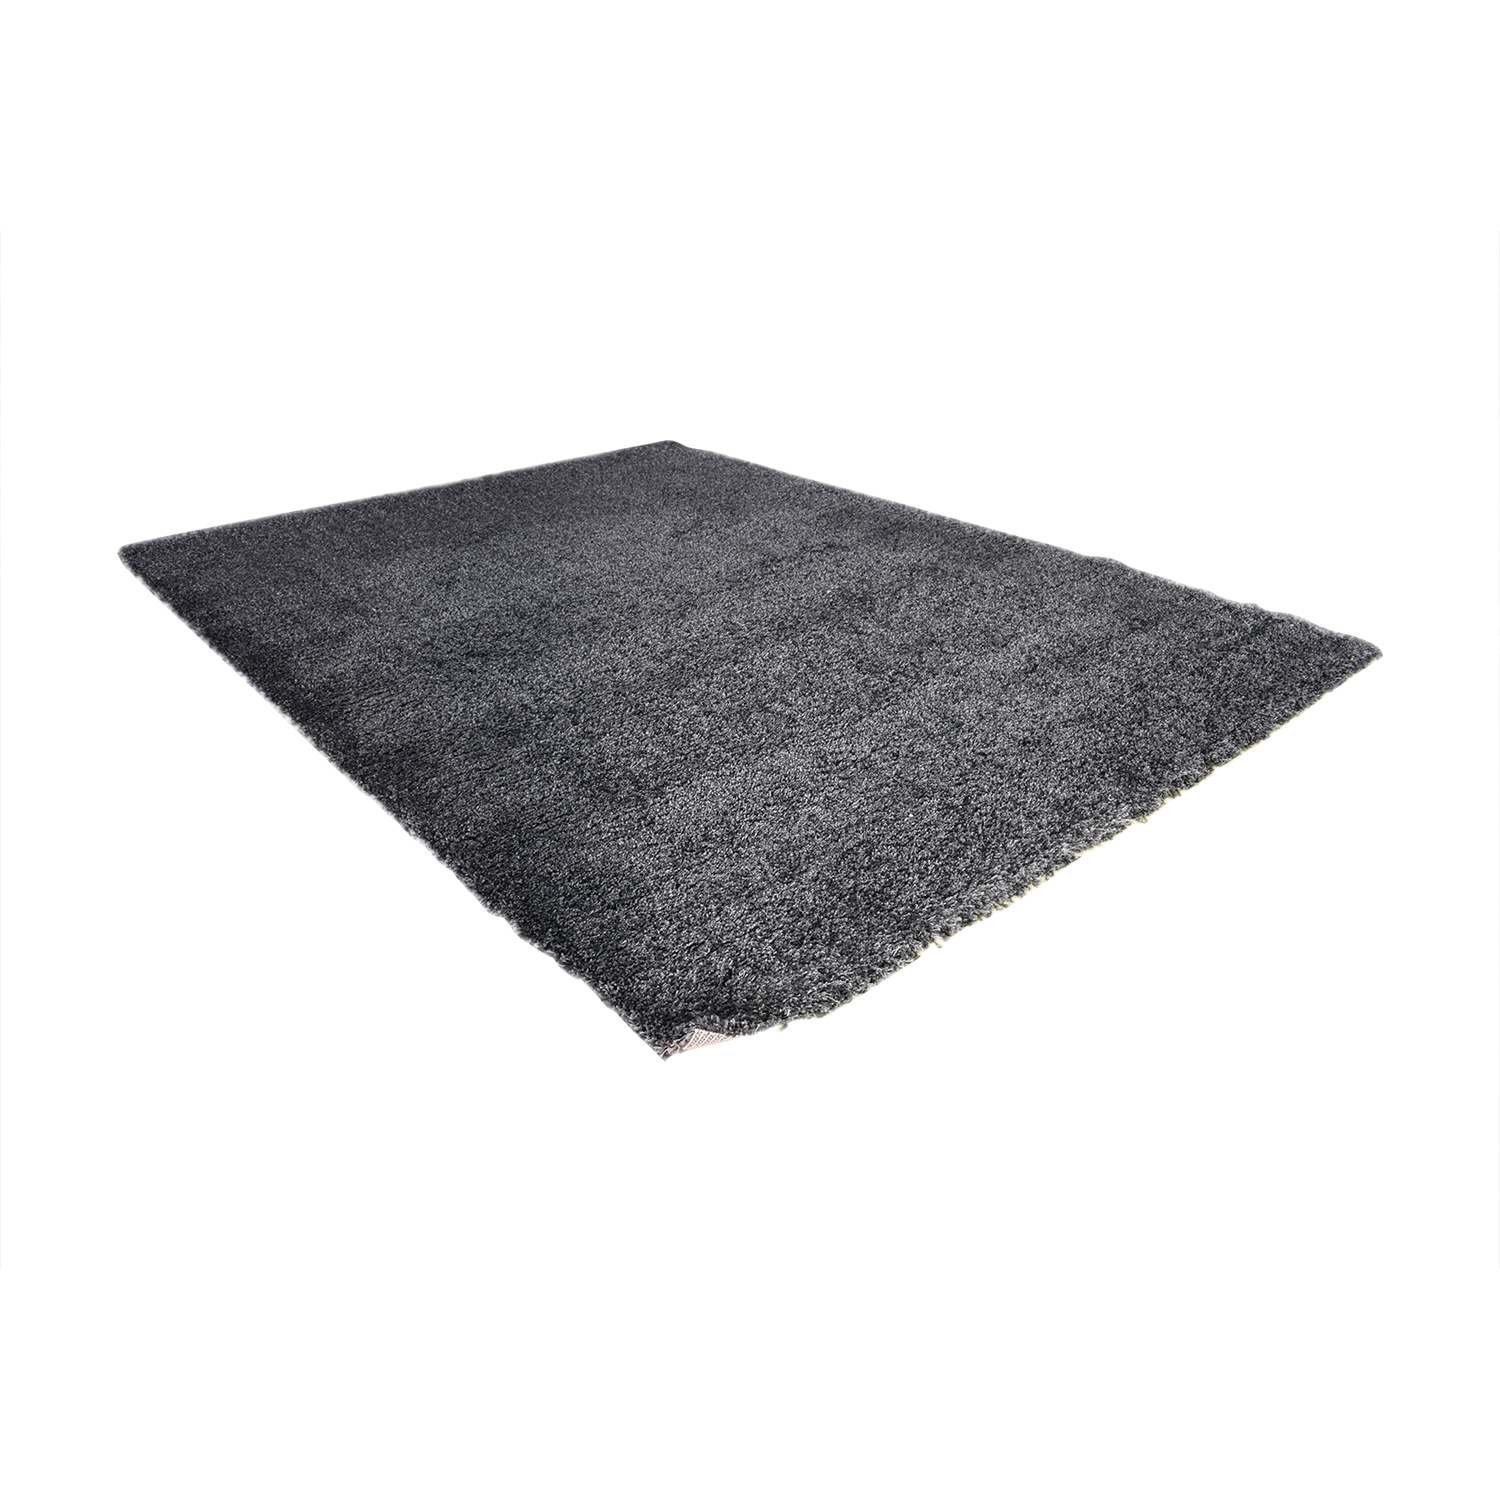 buy Crate & Barrel Black Wool Rug Crate & Barrel Rugs